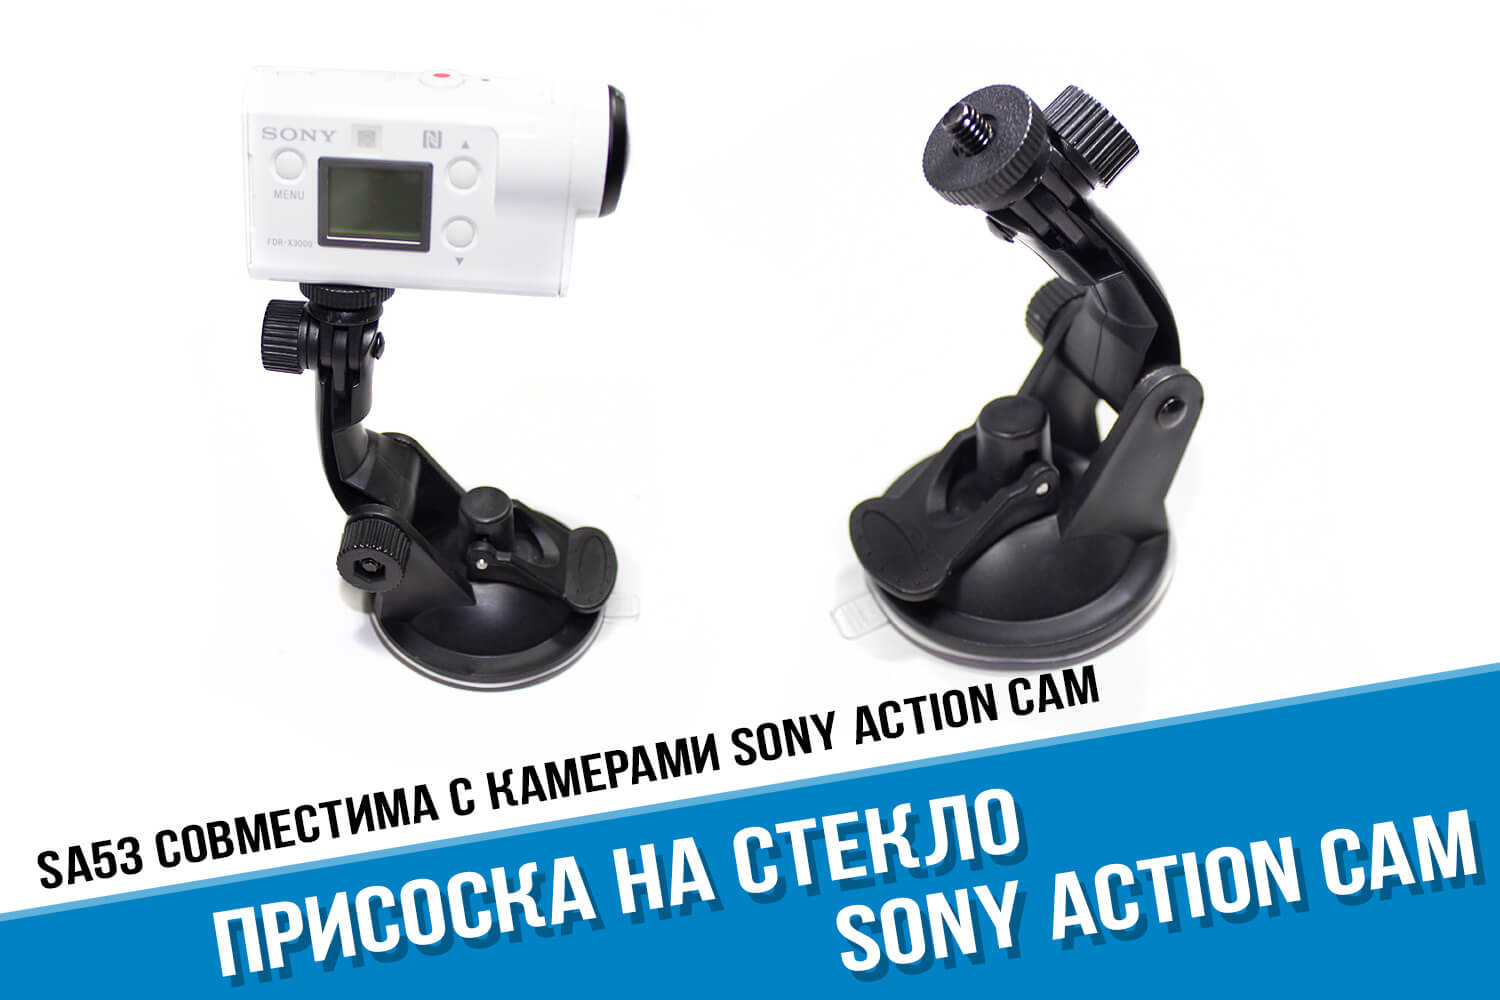 Присоска для Sony Action Cam